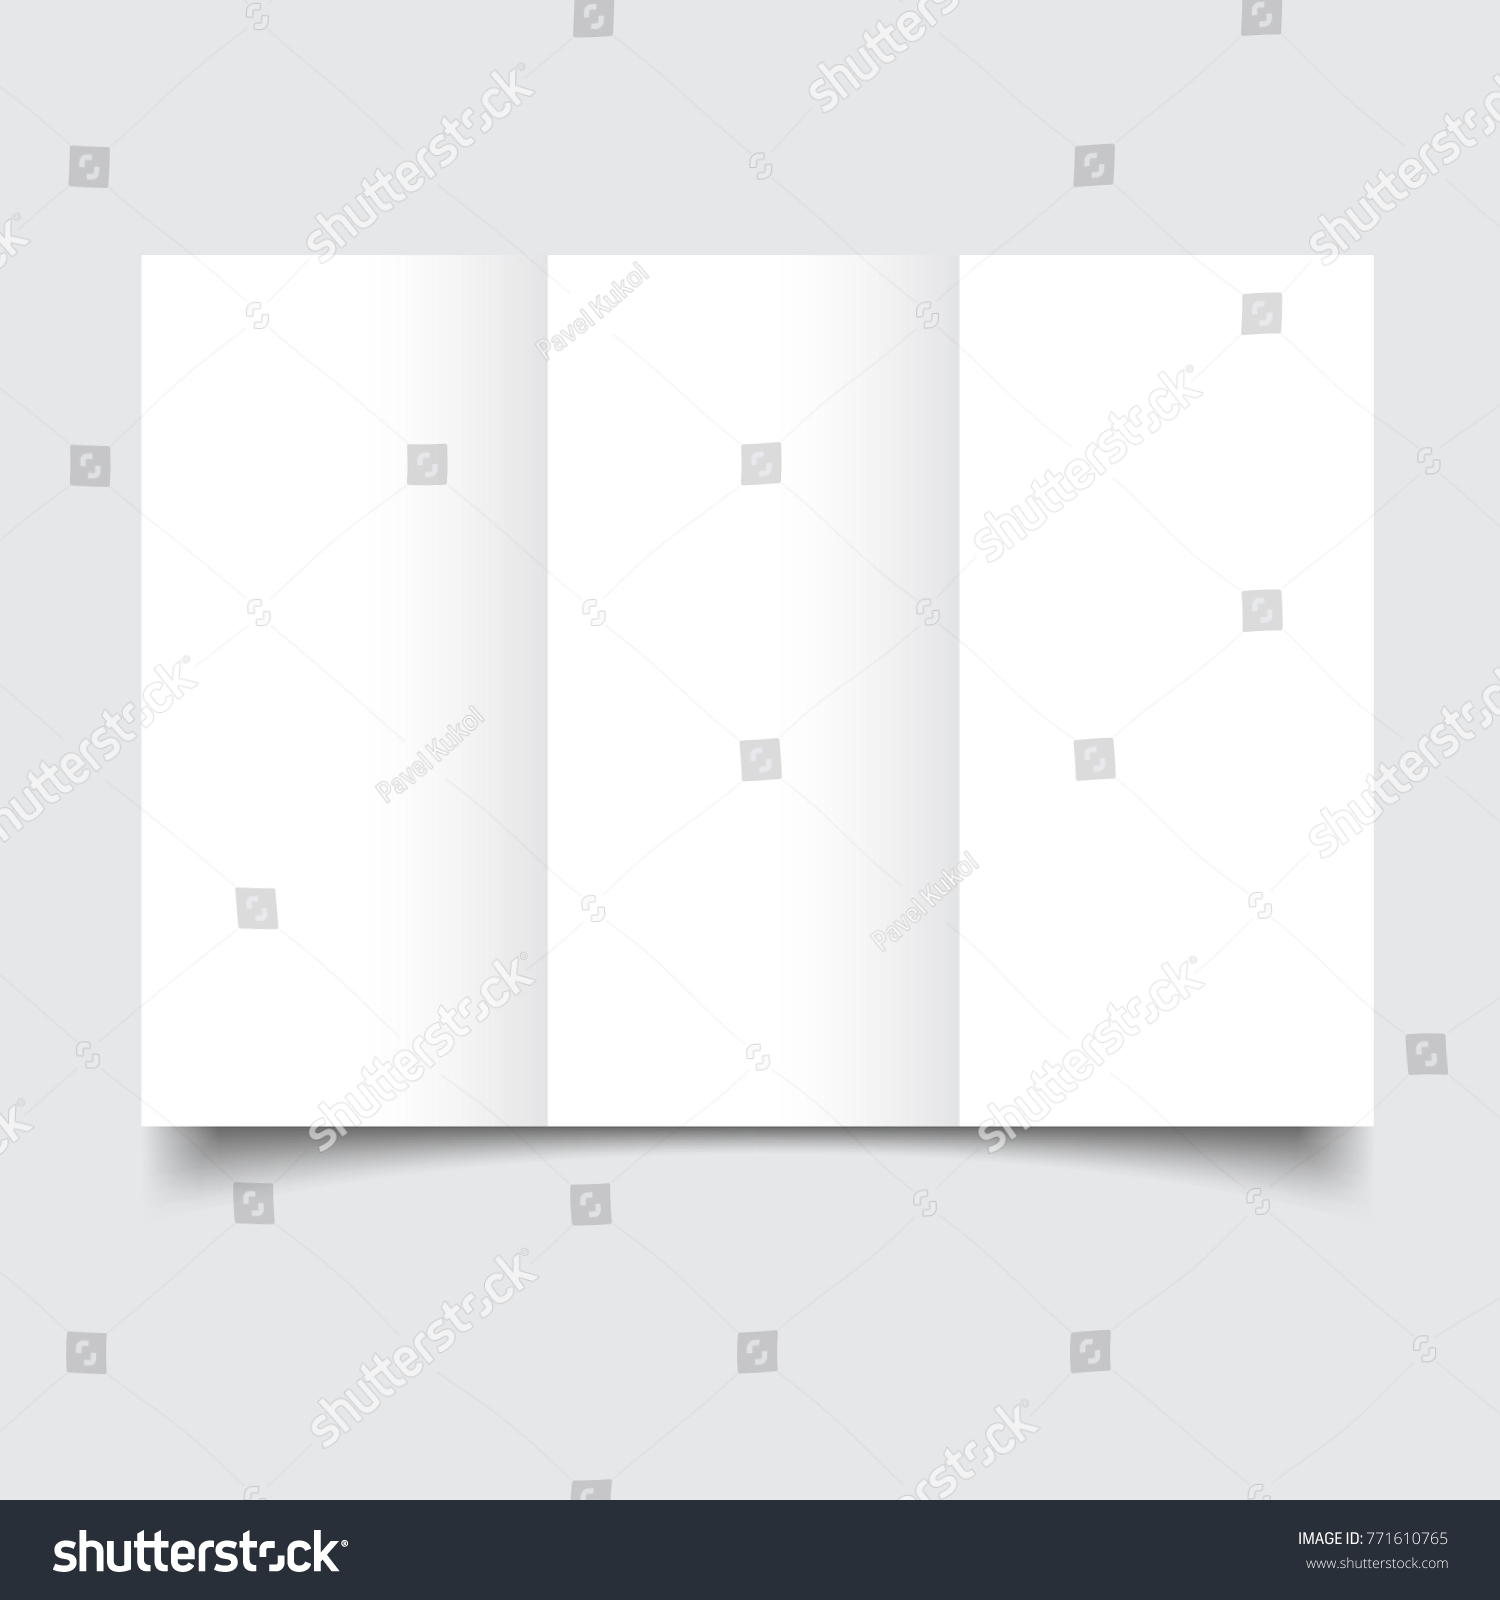 Blank Brochure Template Paper Bends Soft Stock Vector - Blank brochure template